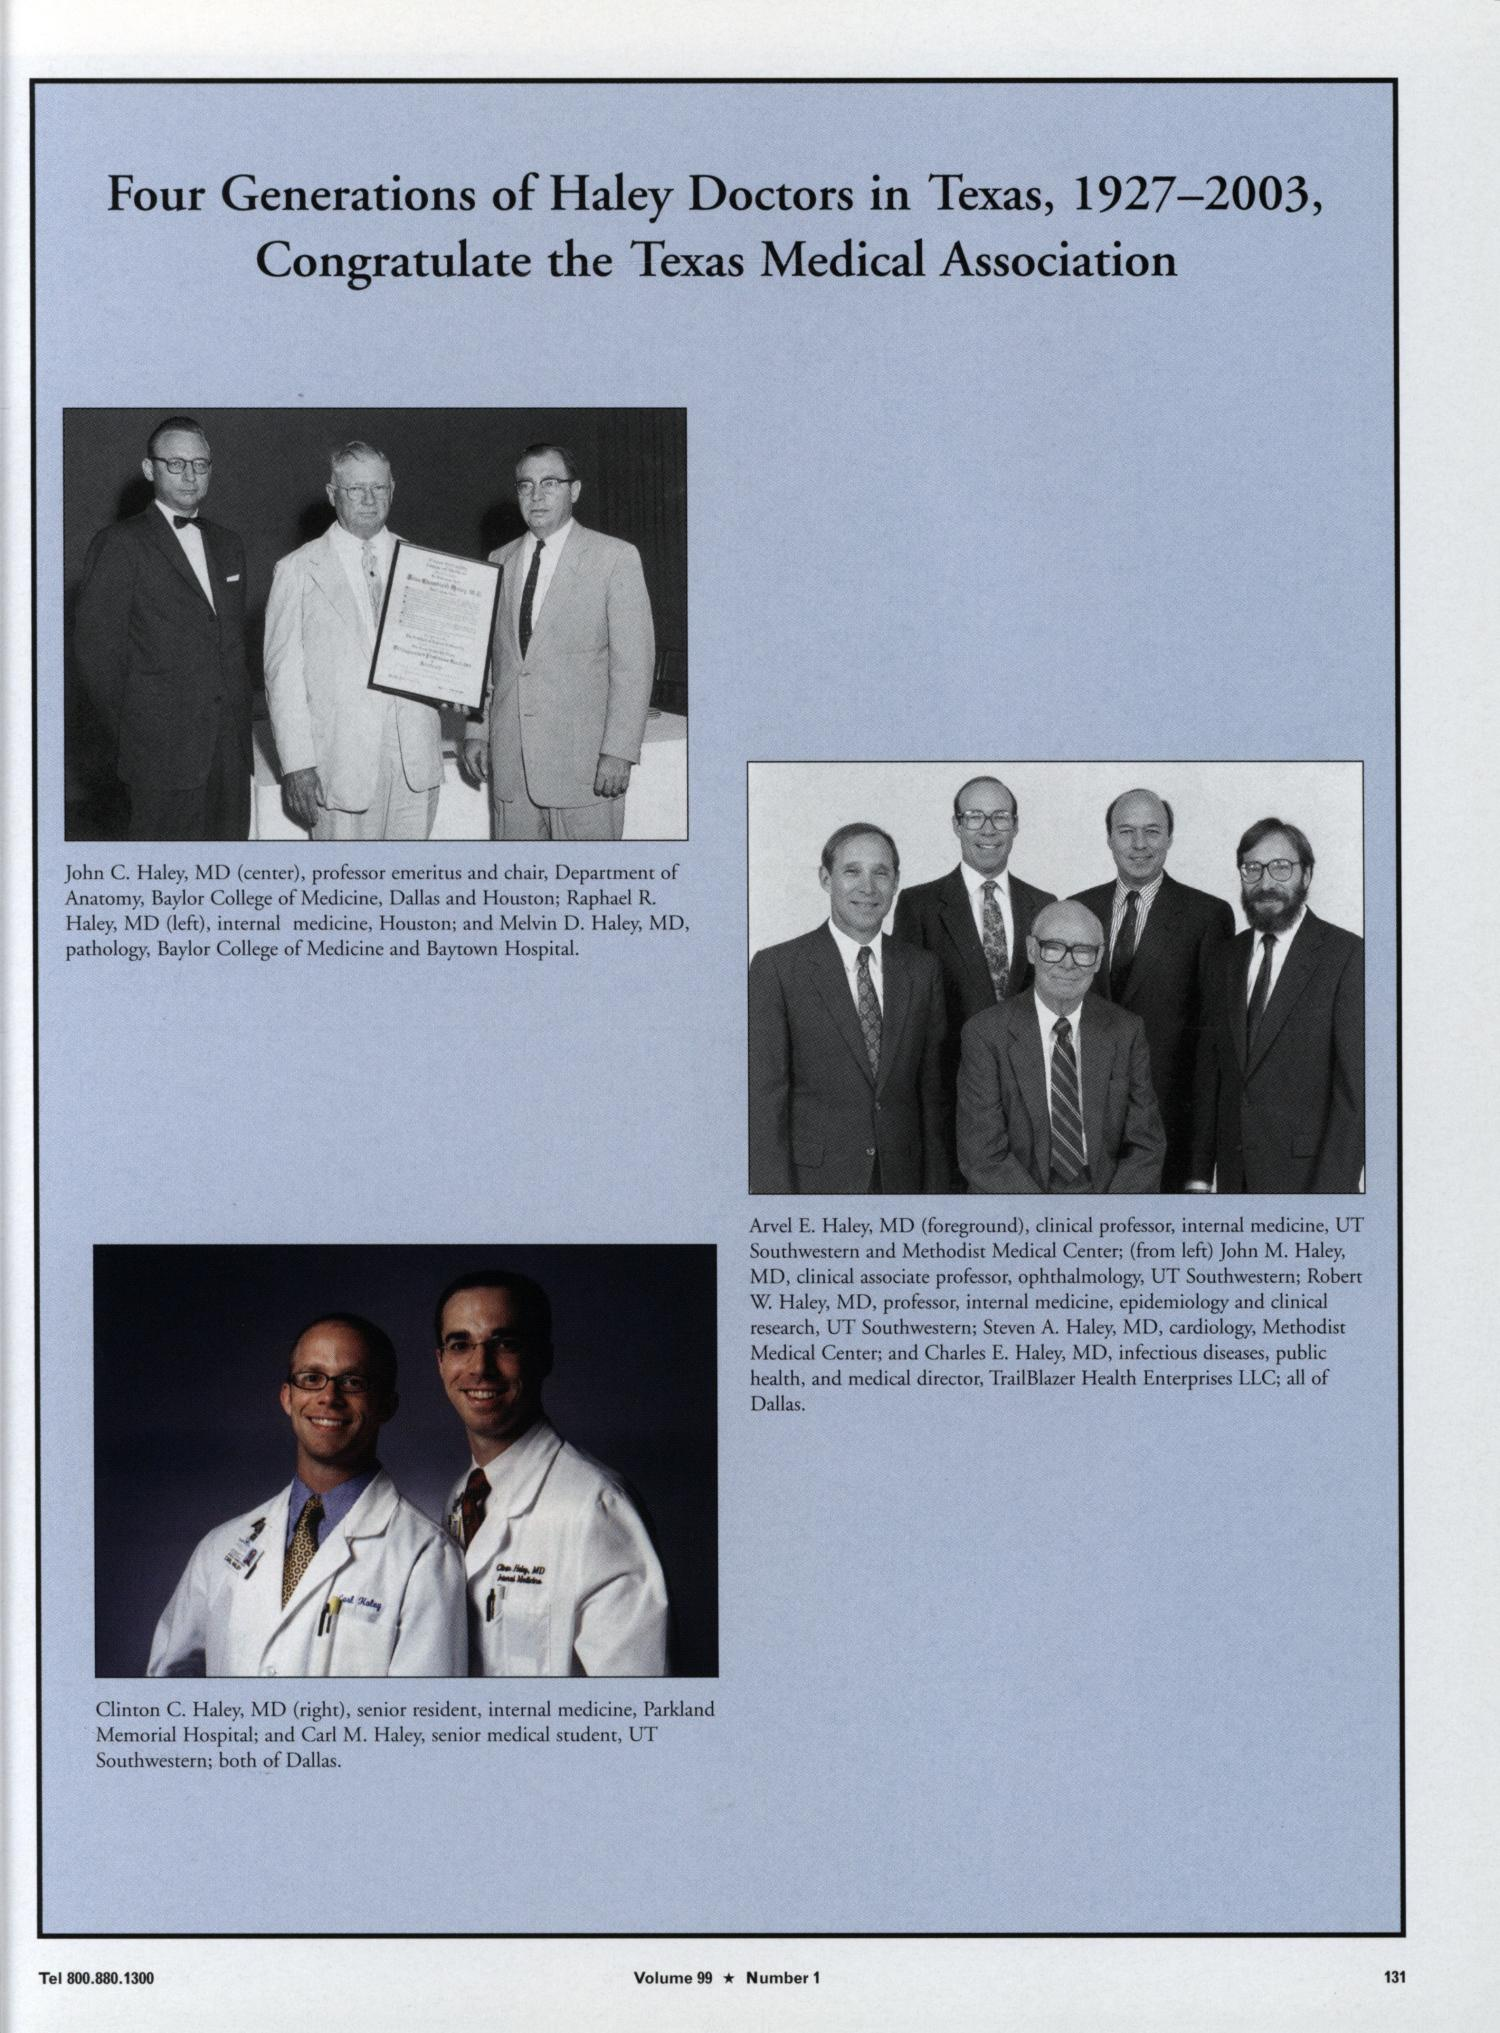 Texas Medicine, Volume 99, Number 1, January 2003 - Page 131